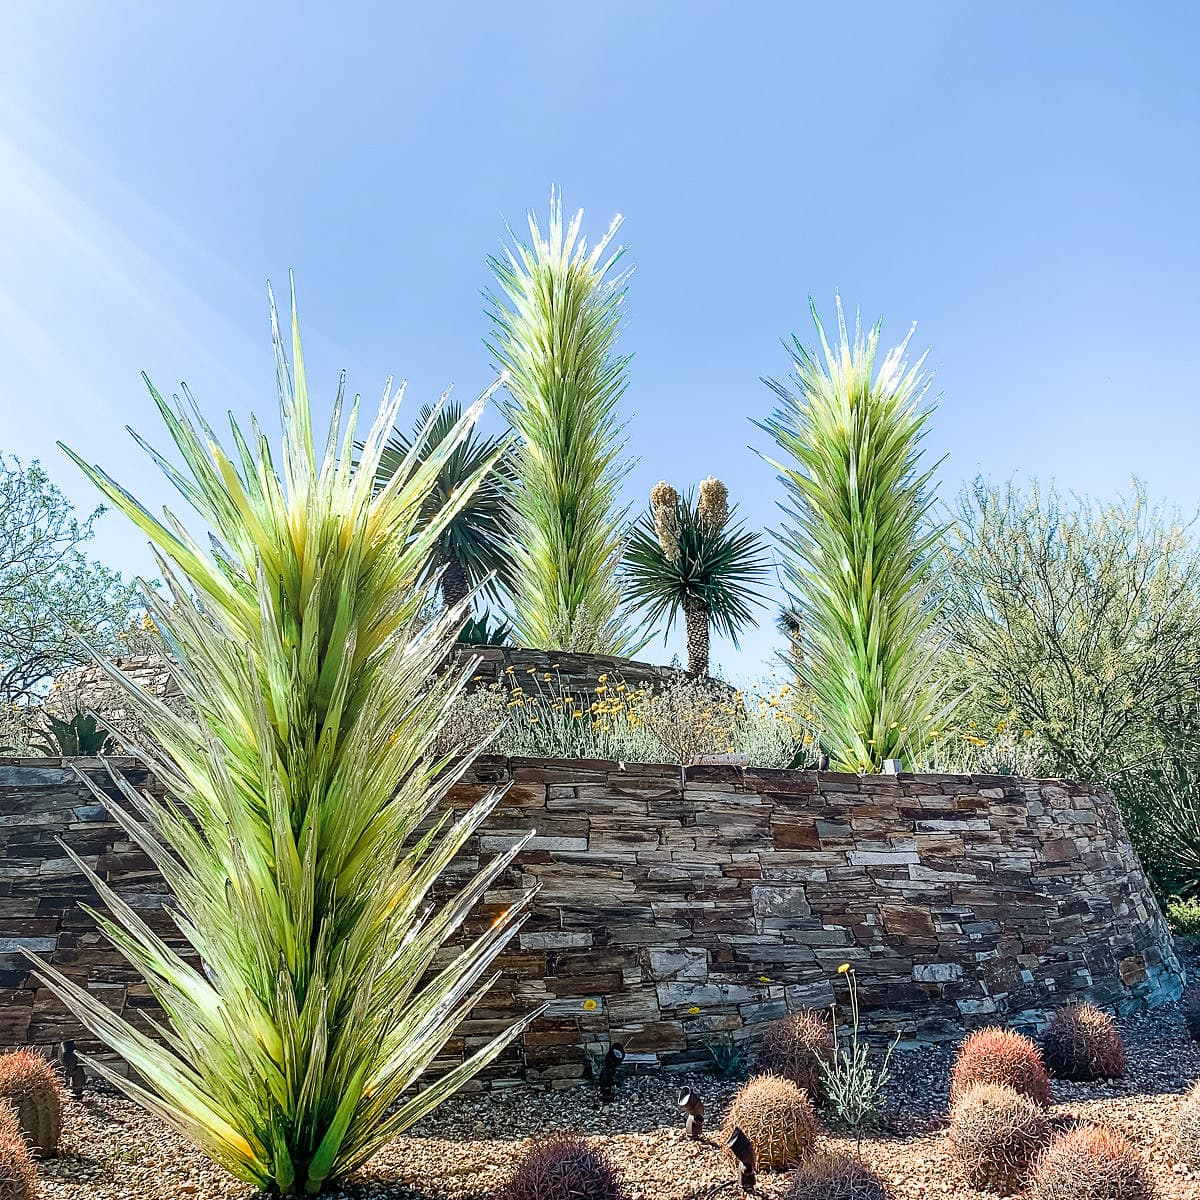 Chihuly glass sculptures at the Desert Botanical Garden